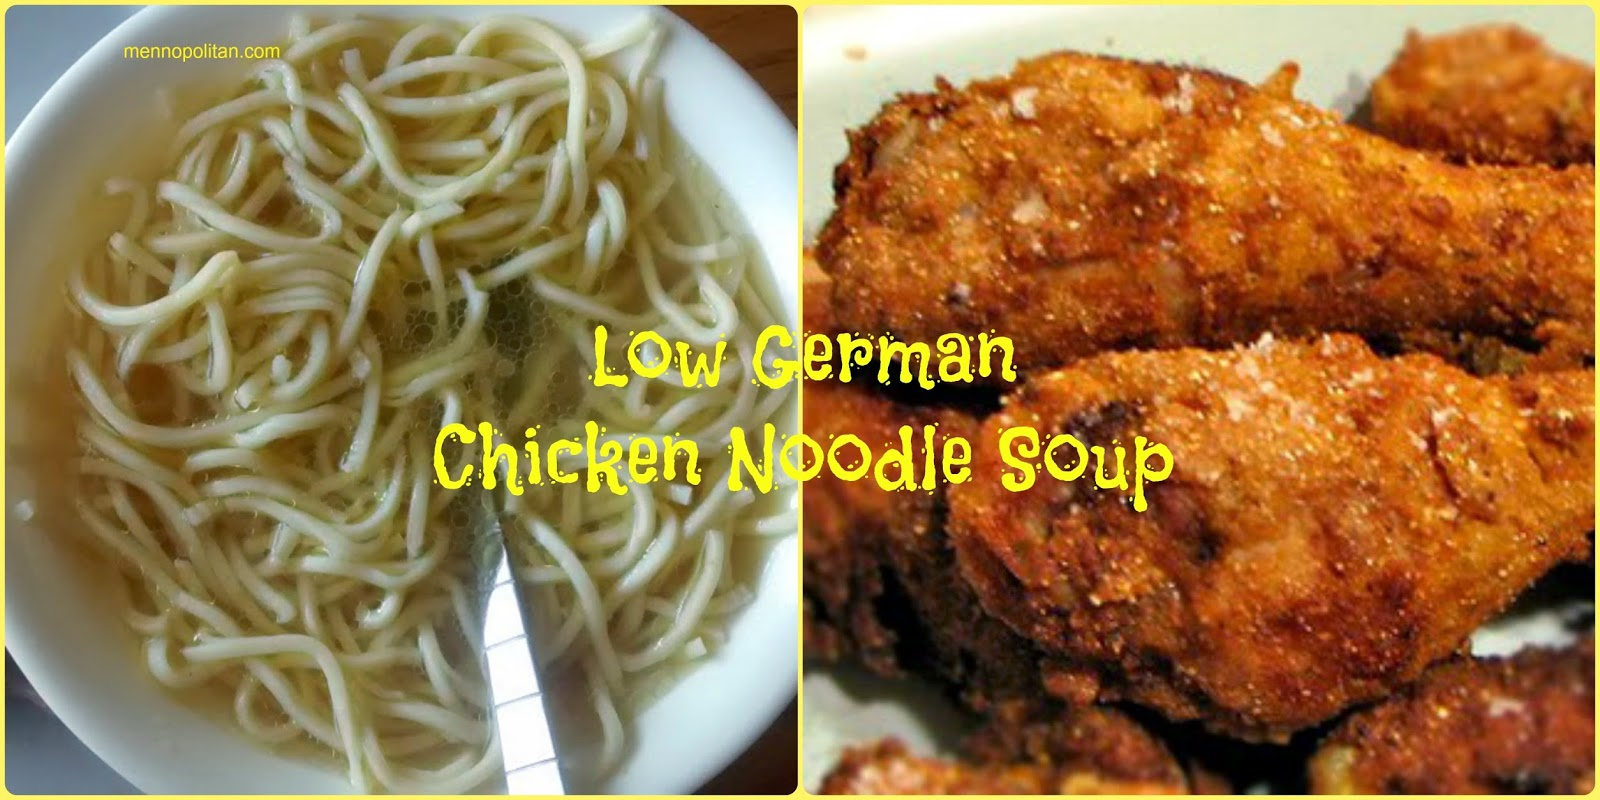 Mennopolitan: Low German Chicken Noodle Soup